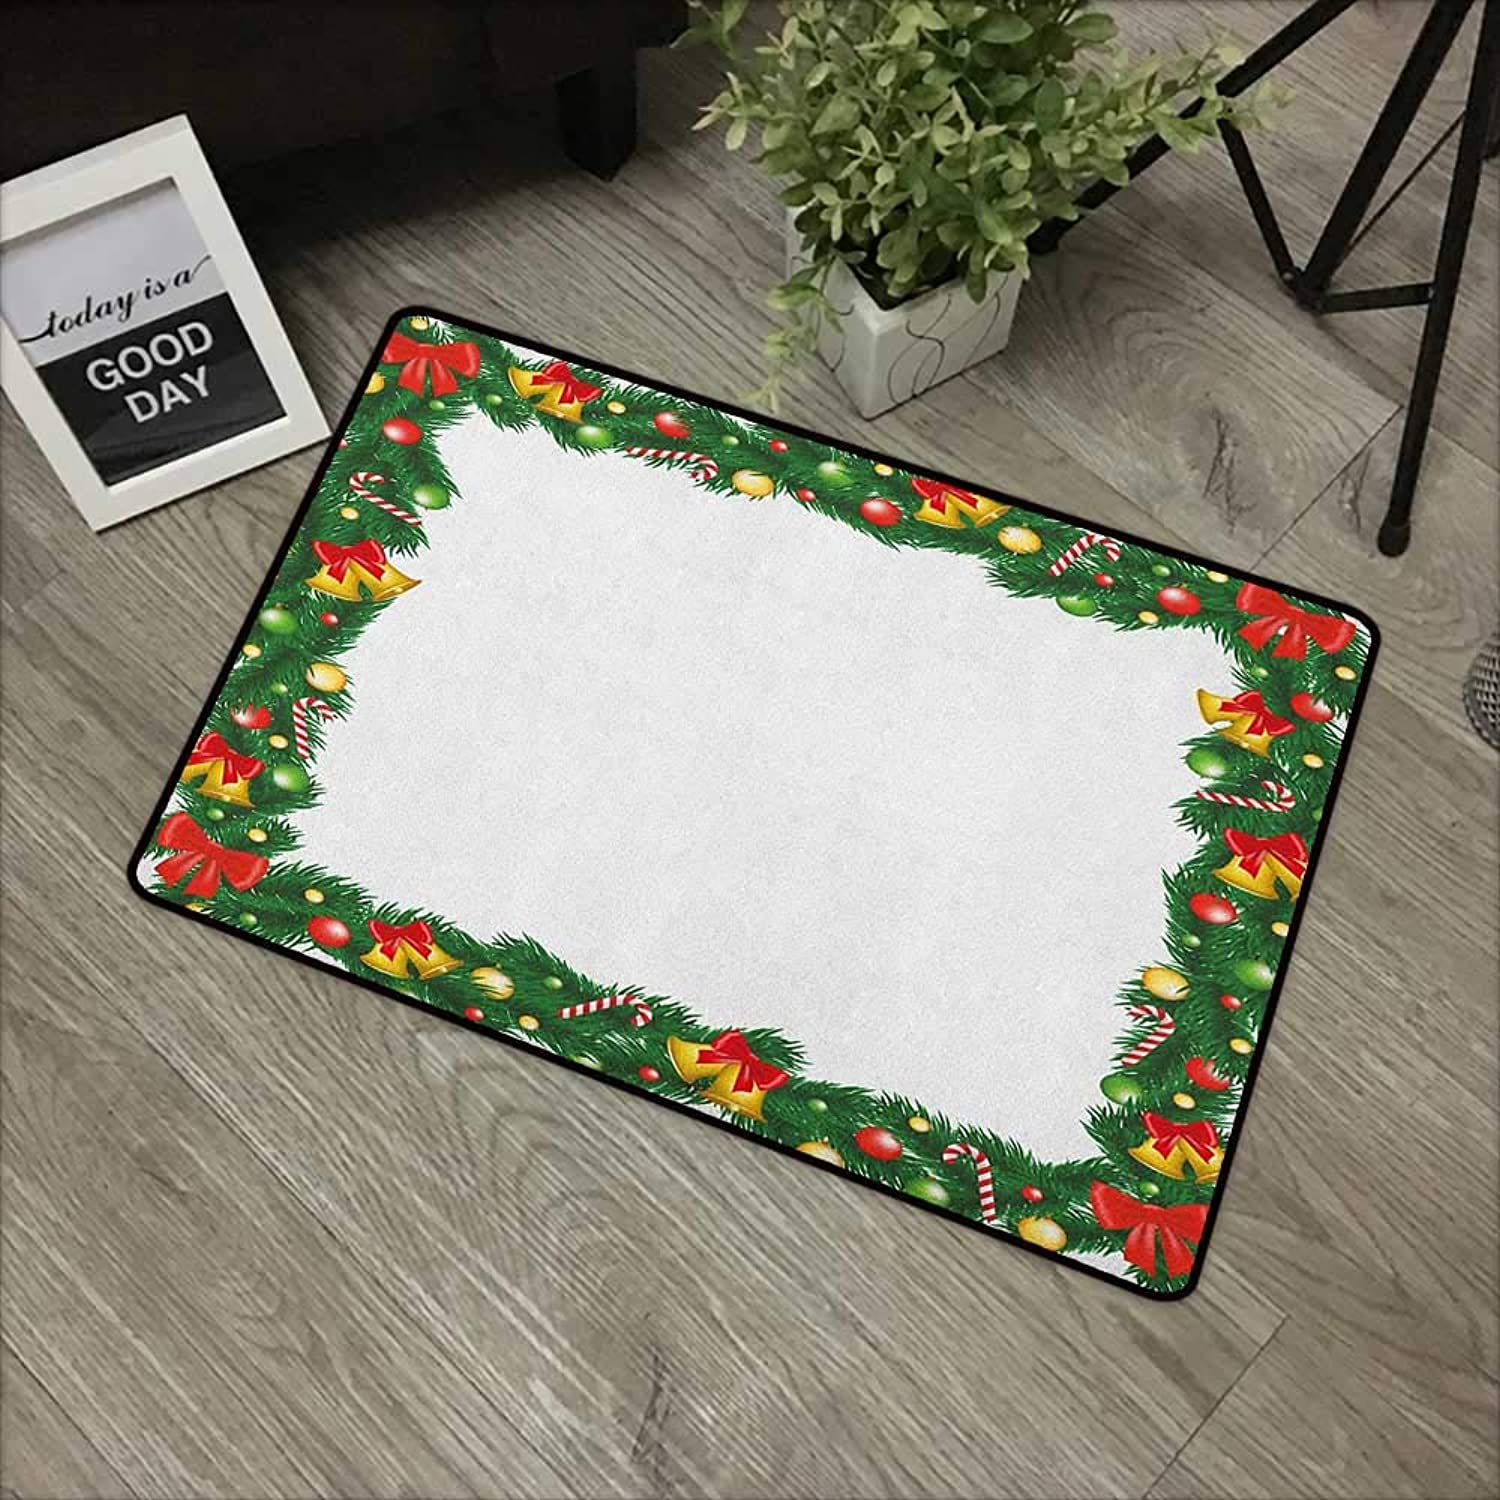 Door mat W35 x L59 INCH New Year,Xmas Themed Garland with Candy Canes Ribbons colorful Baubles and Bells Winter, Multicolor Easy to Clean, no Deformation, no Fading Non-Slip Door Mat Carpet